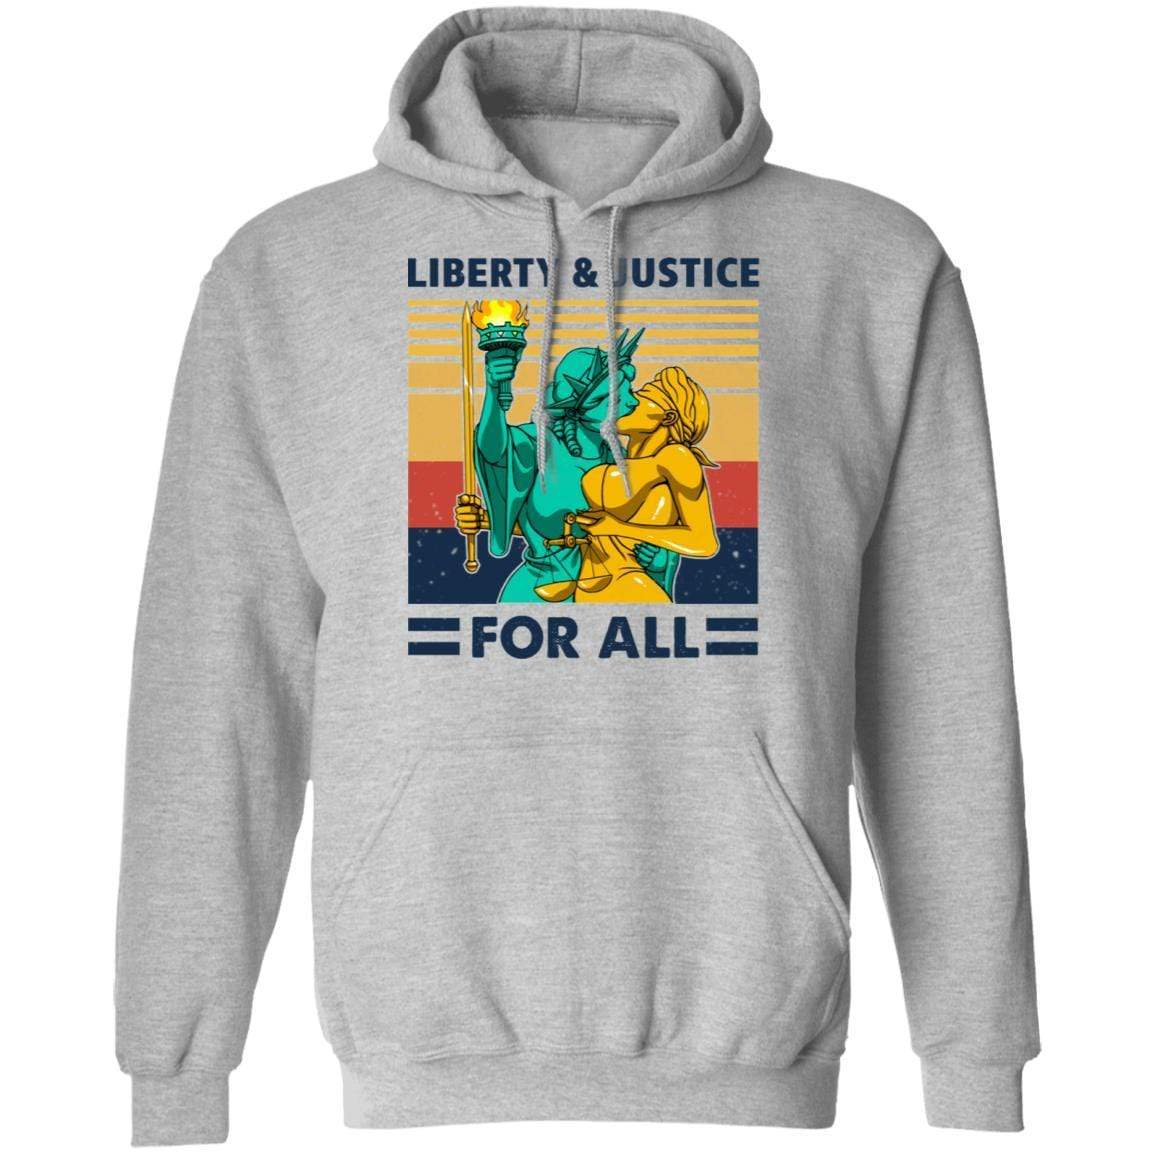 Liberty & Justice For All Vintage T-Shirts, Hoodies 541-4741-88477980-23111 - Tee Ript